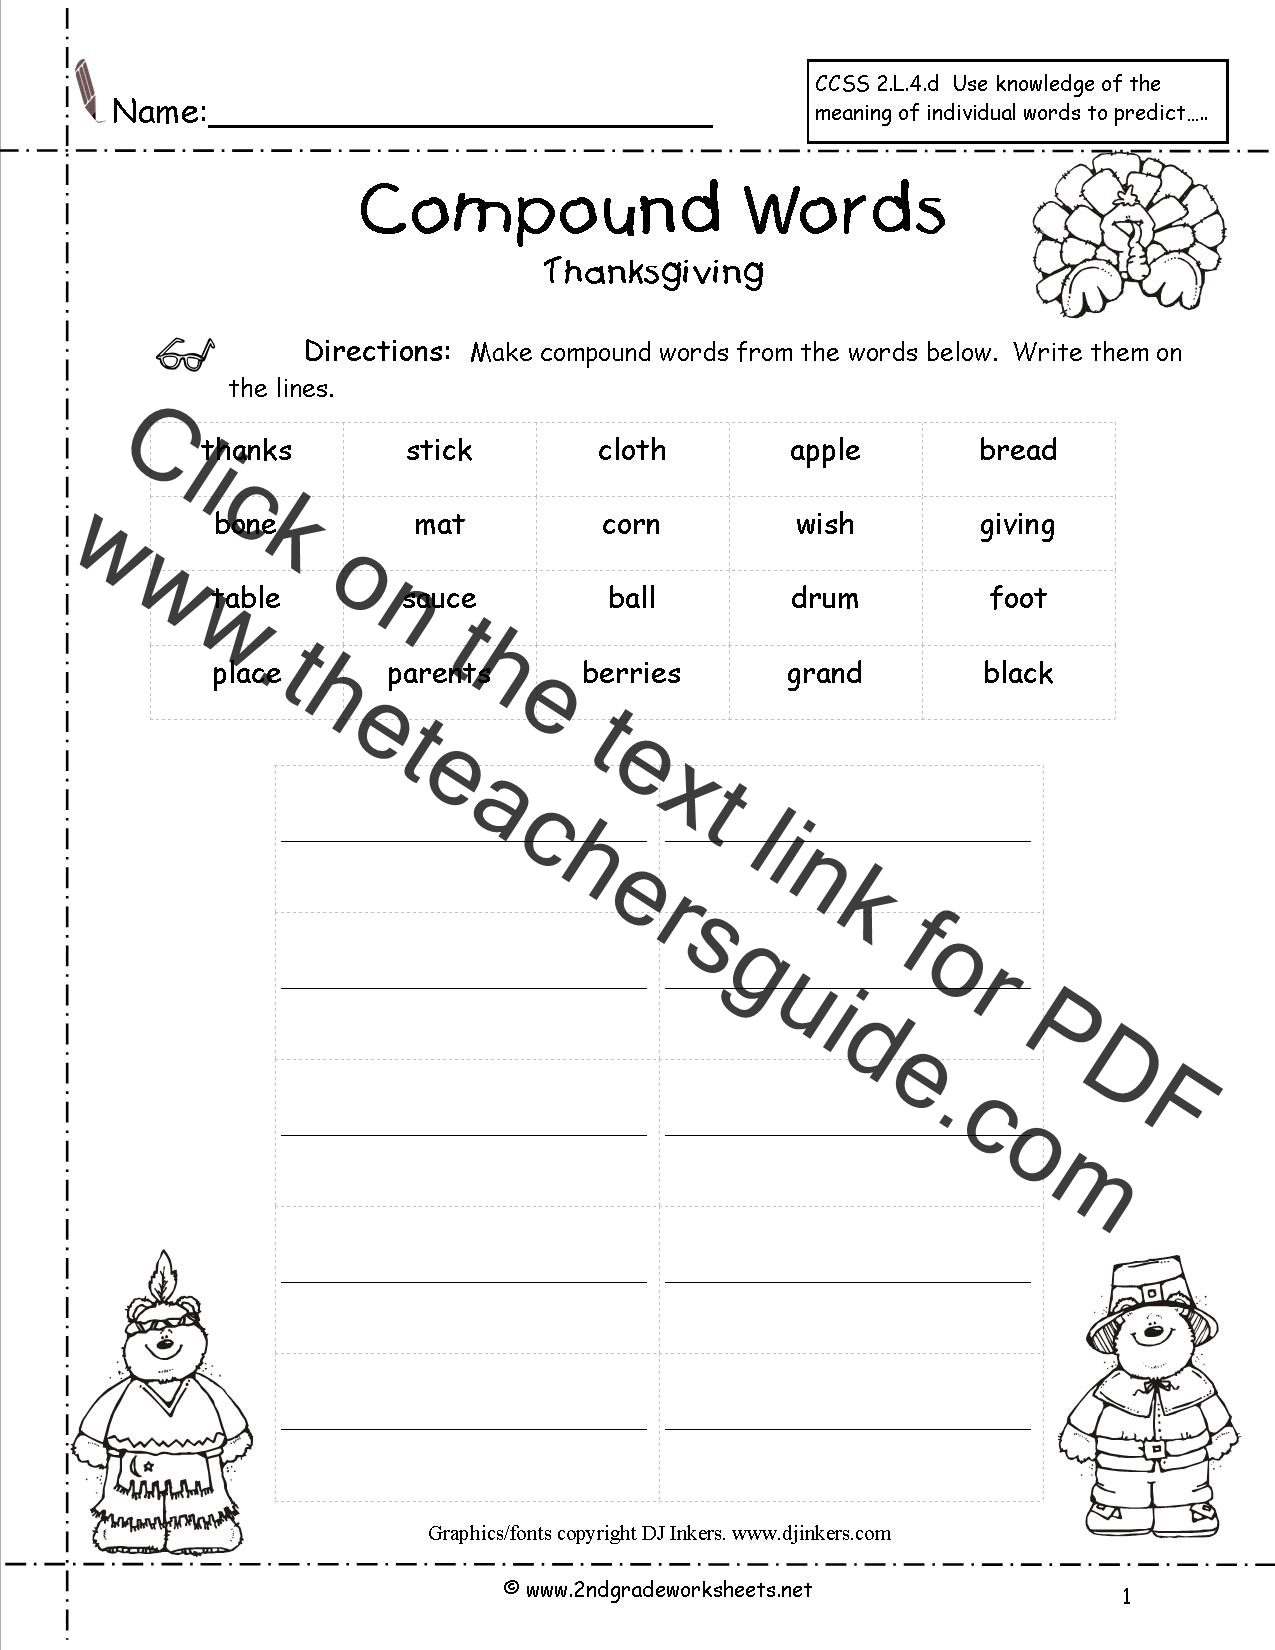 Worksheet 2nd Grade Words compound words worksheets 2nd grade intrepidpath free printable thanksgiving sheets